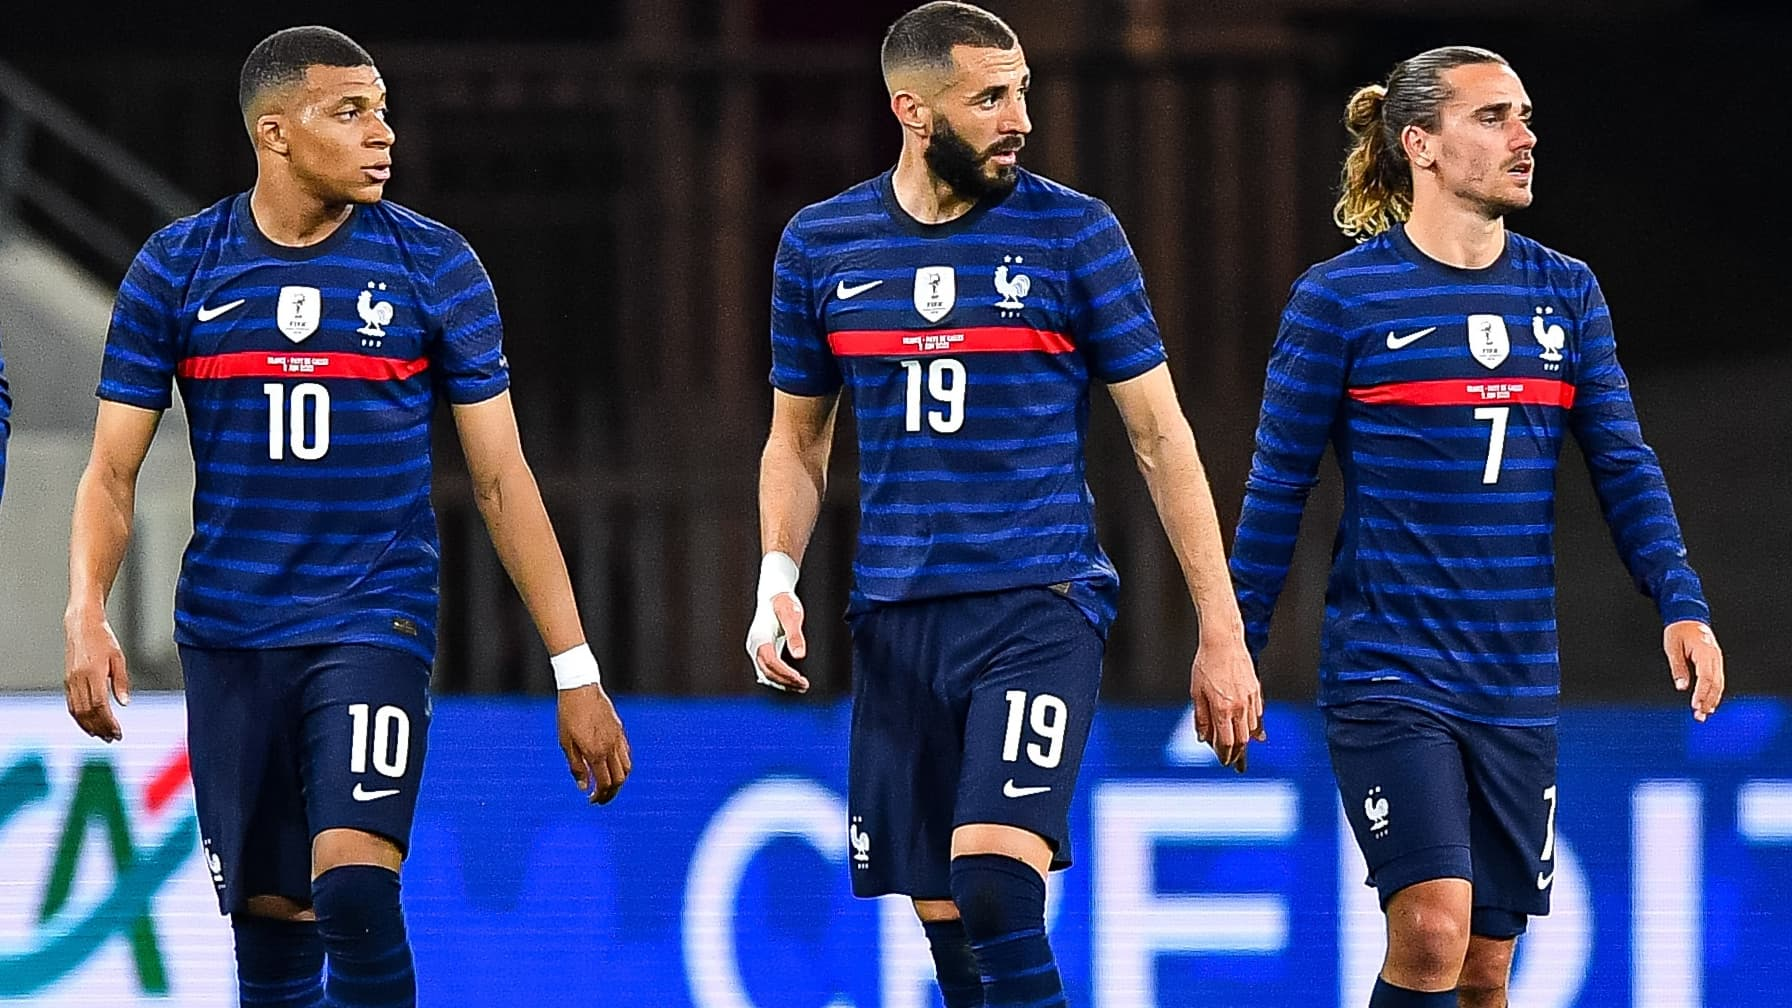 France-Wales: the very promising start of the Mbappé-Benzema-Griezmann trio  - The Indian Paper